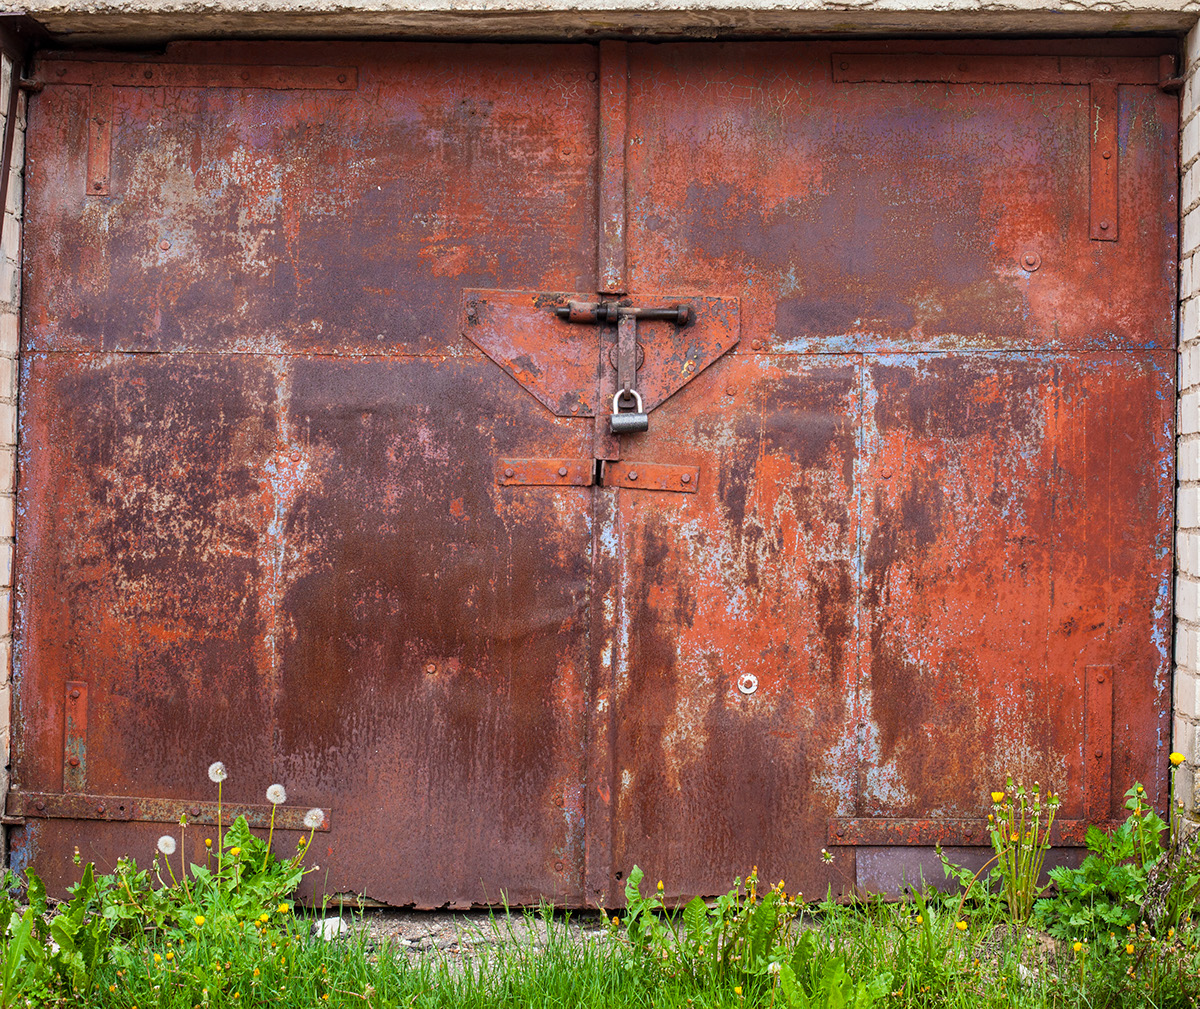 beauty-remains-garage-doors-agne-gintalaite-everythingwithatwist-07